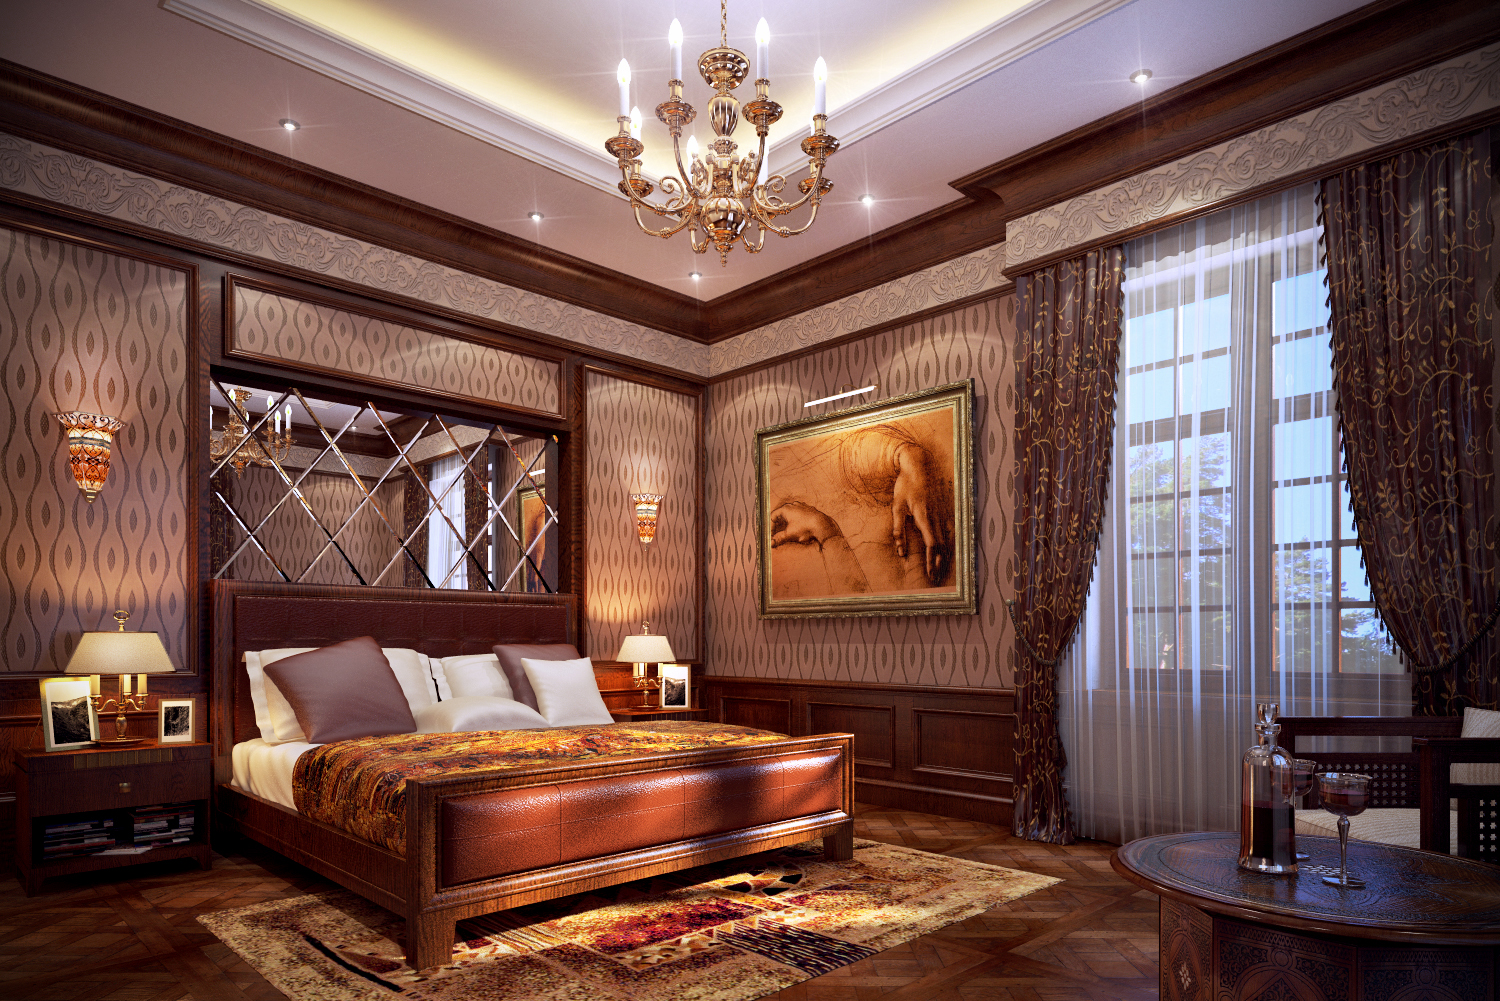 Romantic Master Bedroom Design Ideas 1500 x 1001